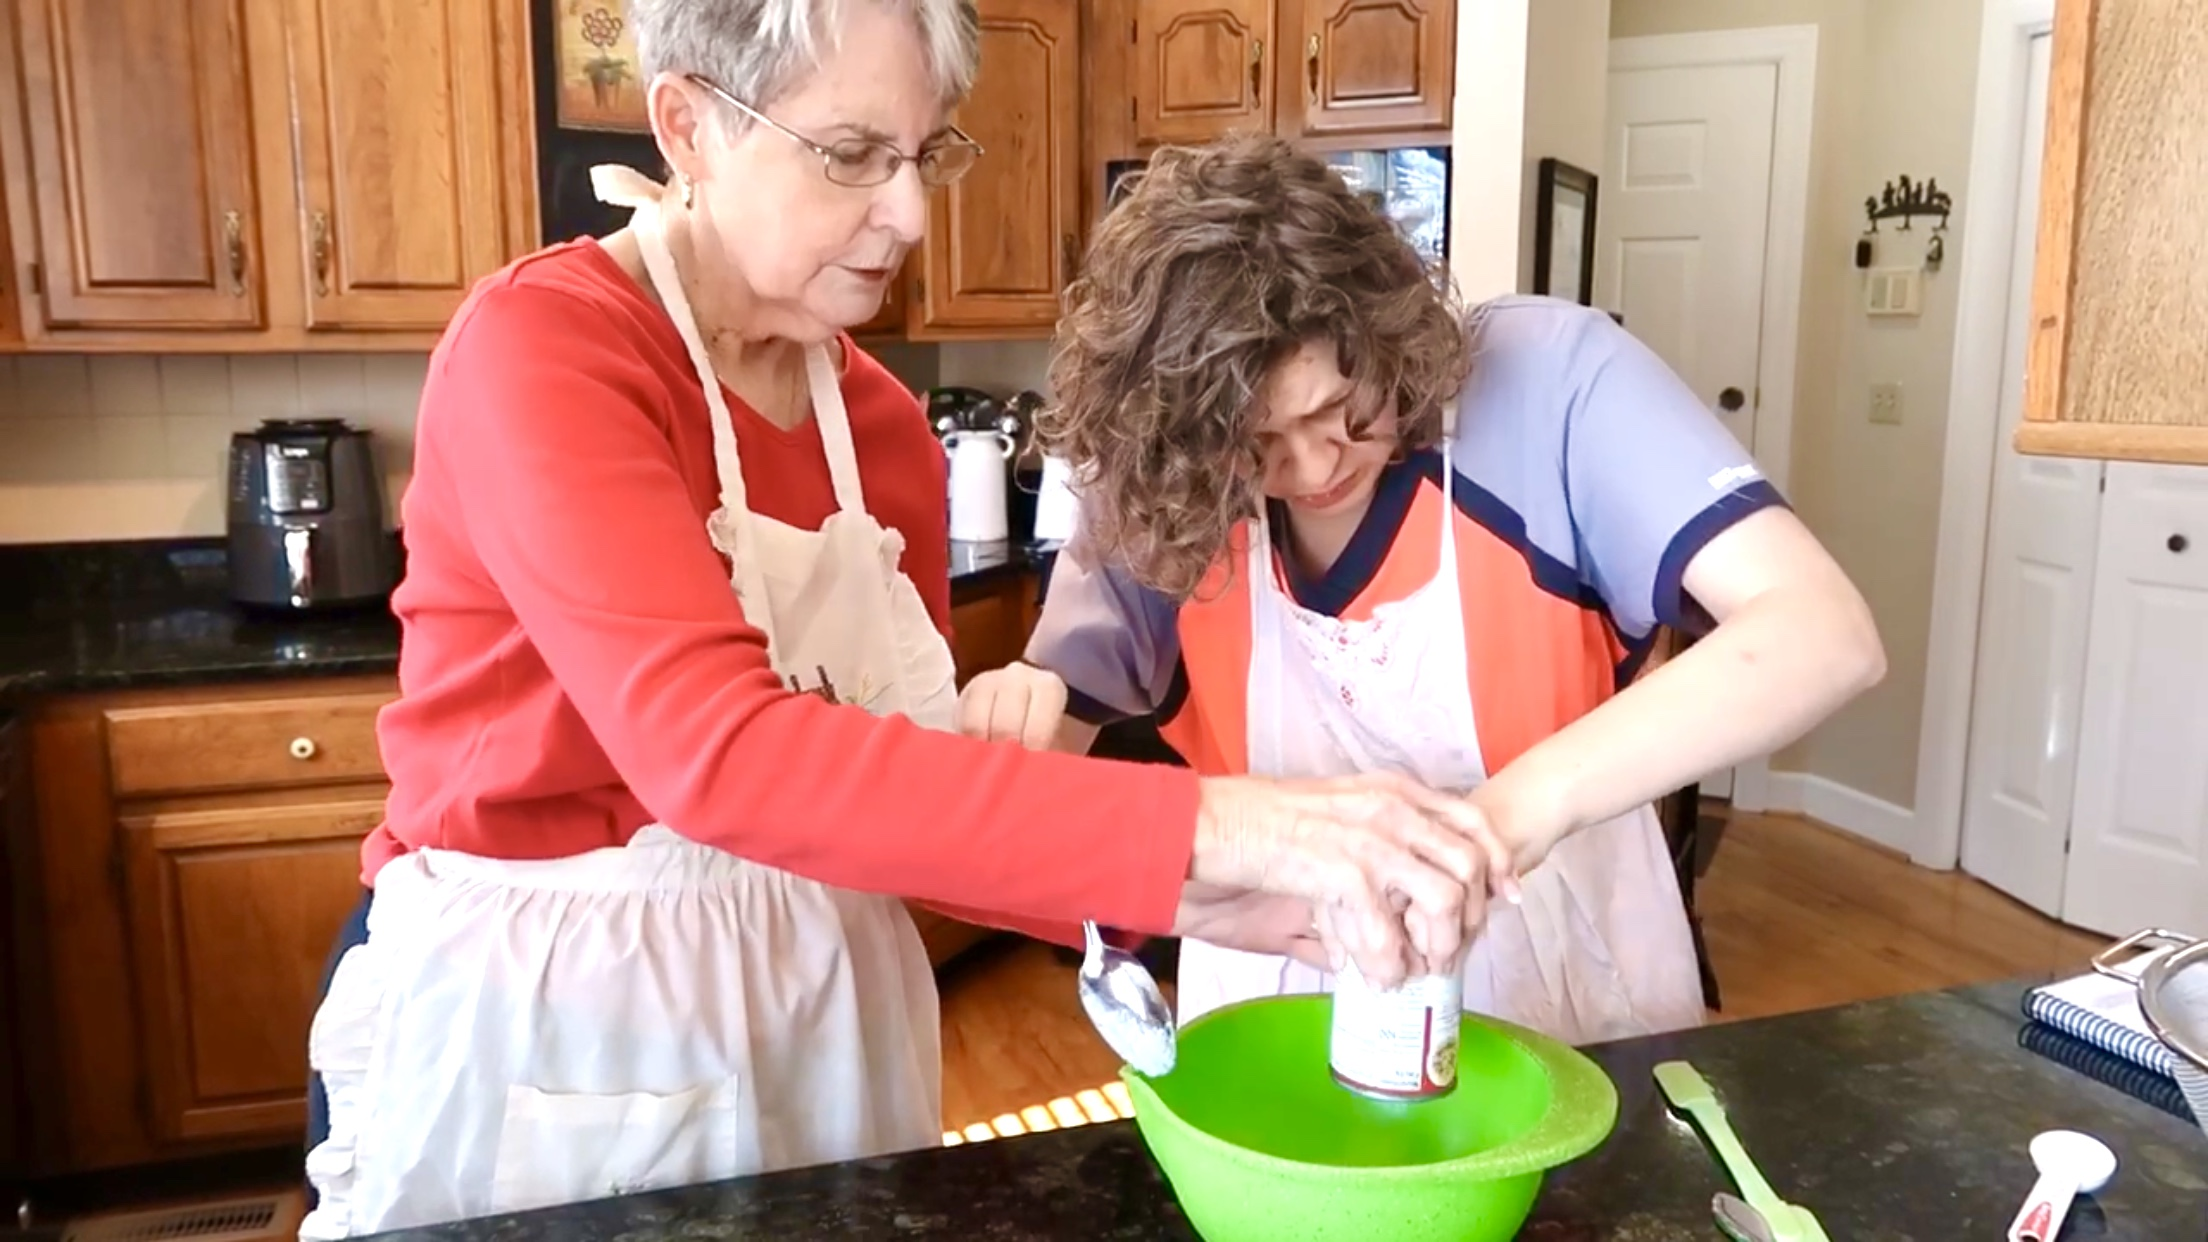 Jess and Nonnie are standing at the kitchen counter. Nonnie is assisting Jess, hand over hand, to get some condensed soup out of a can and into a green plastic bowl.